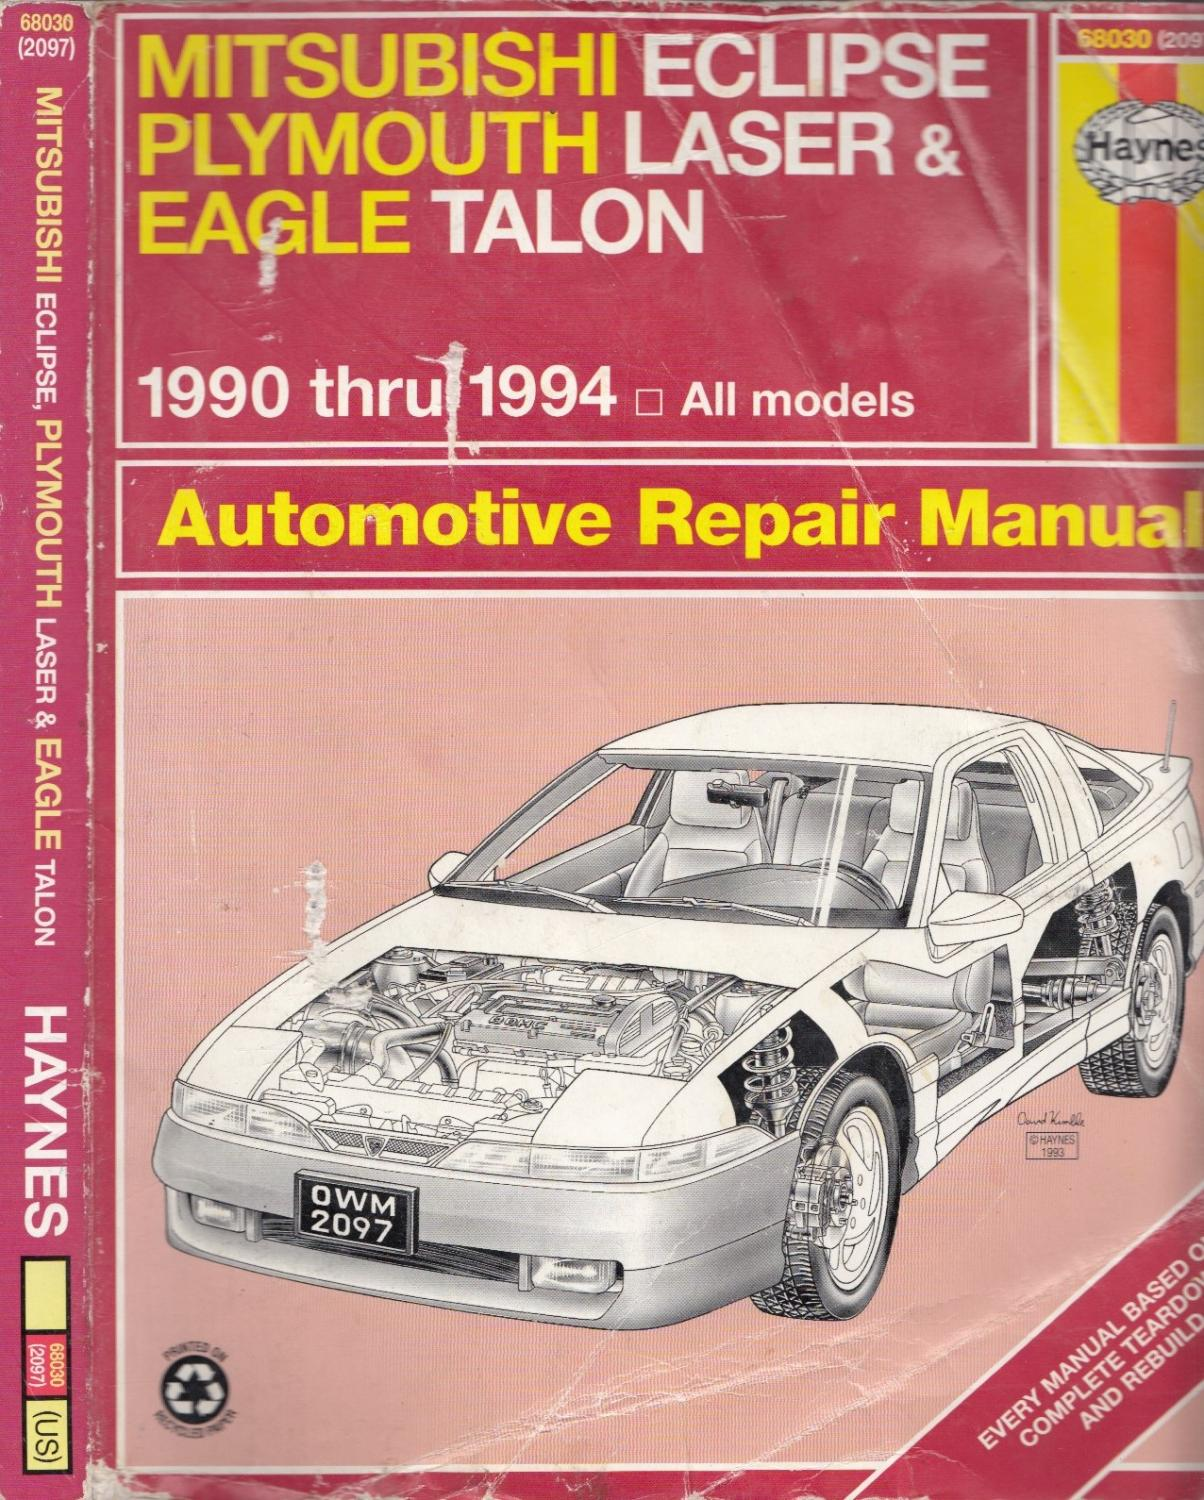 Mitsubishi Eclipse, Plymouth Laser and Eagle Talon (1990 thru 1994)  Automotive Repair Manual